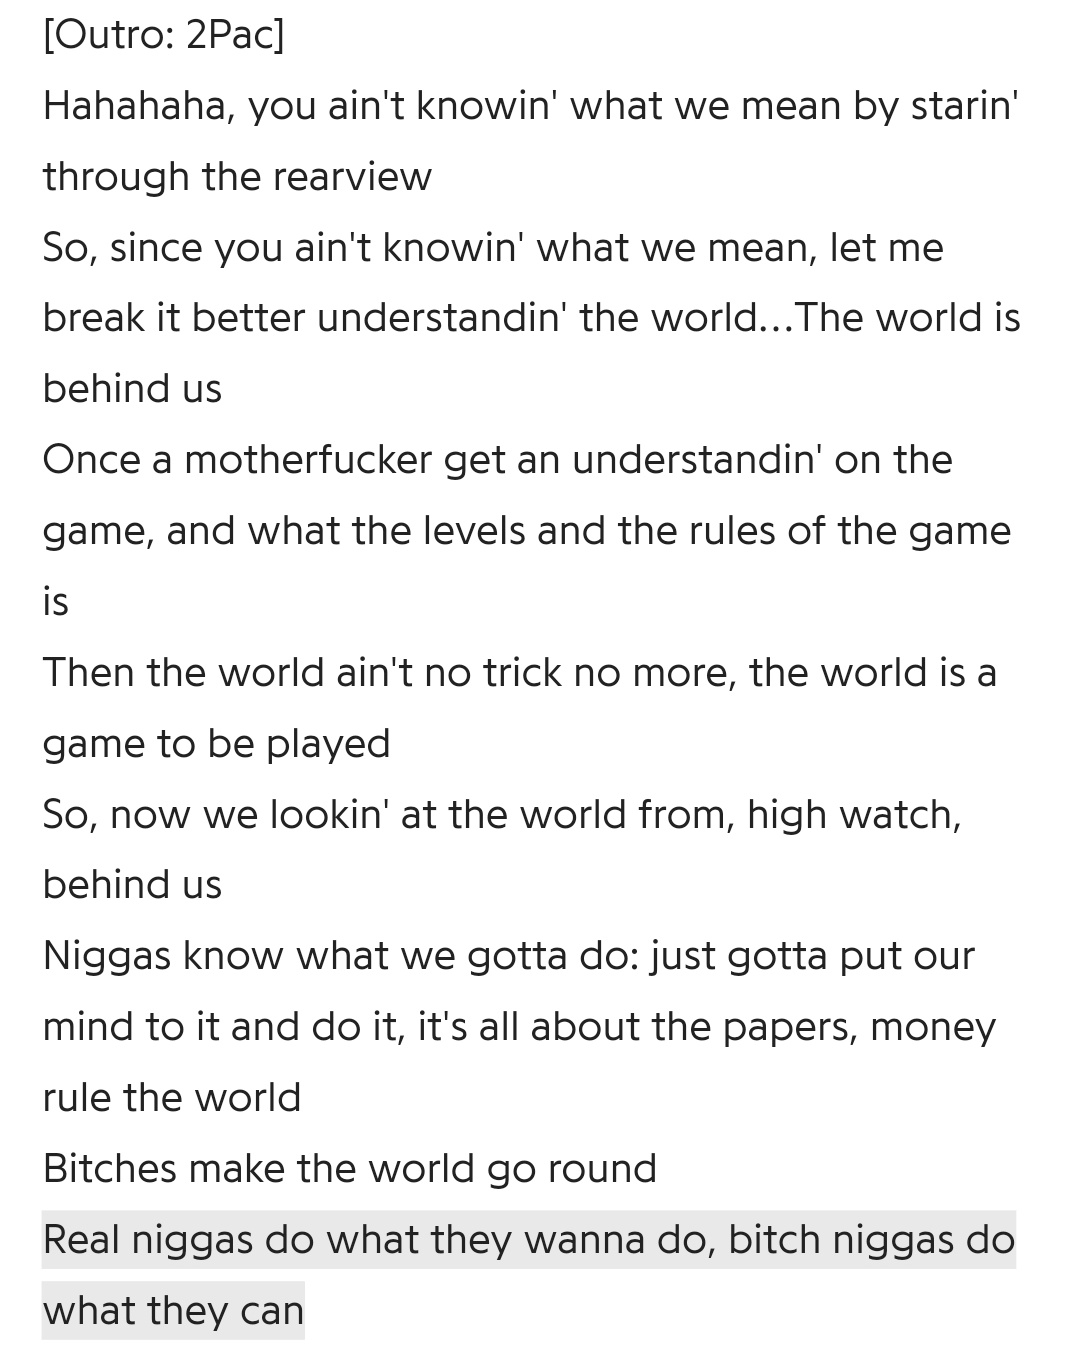 [Image] Life is a game, just learn the rules and play to win.